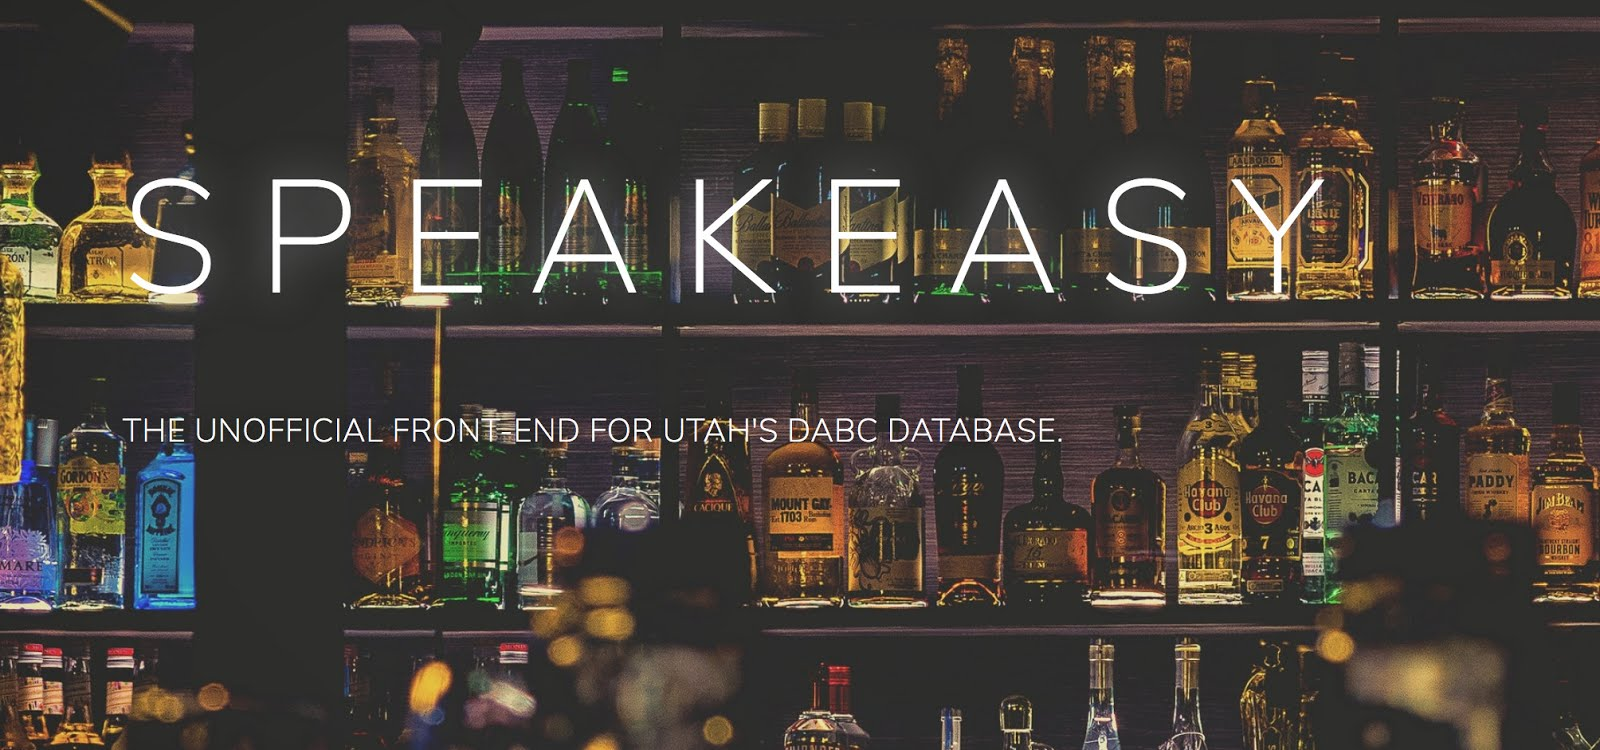 Speakeasy - Search the DABC